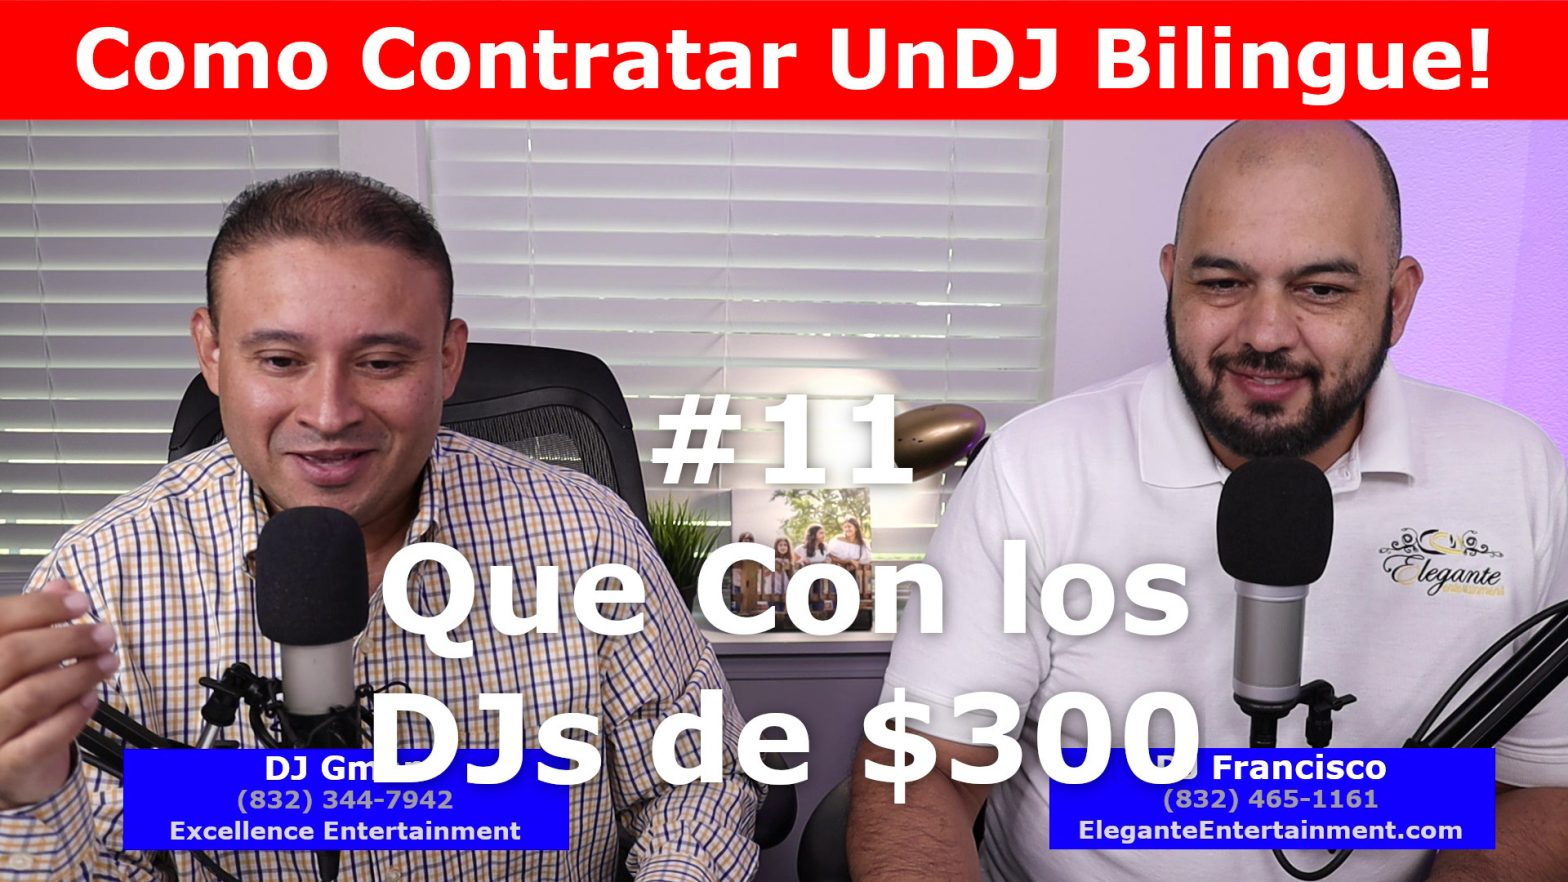 DJ in Houston | #11 DJs that Charge $300